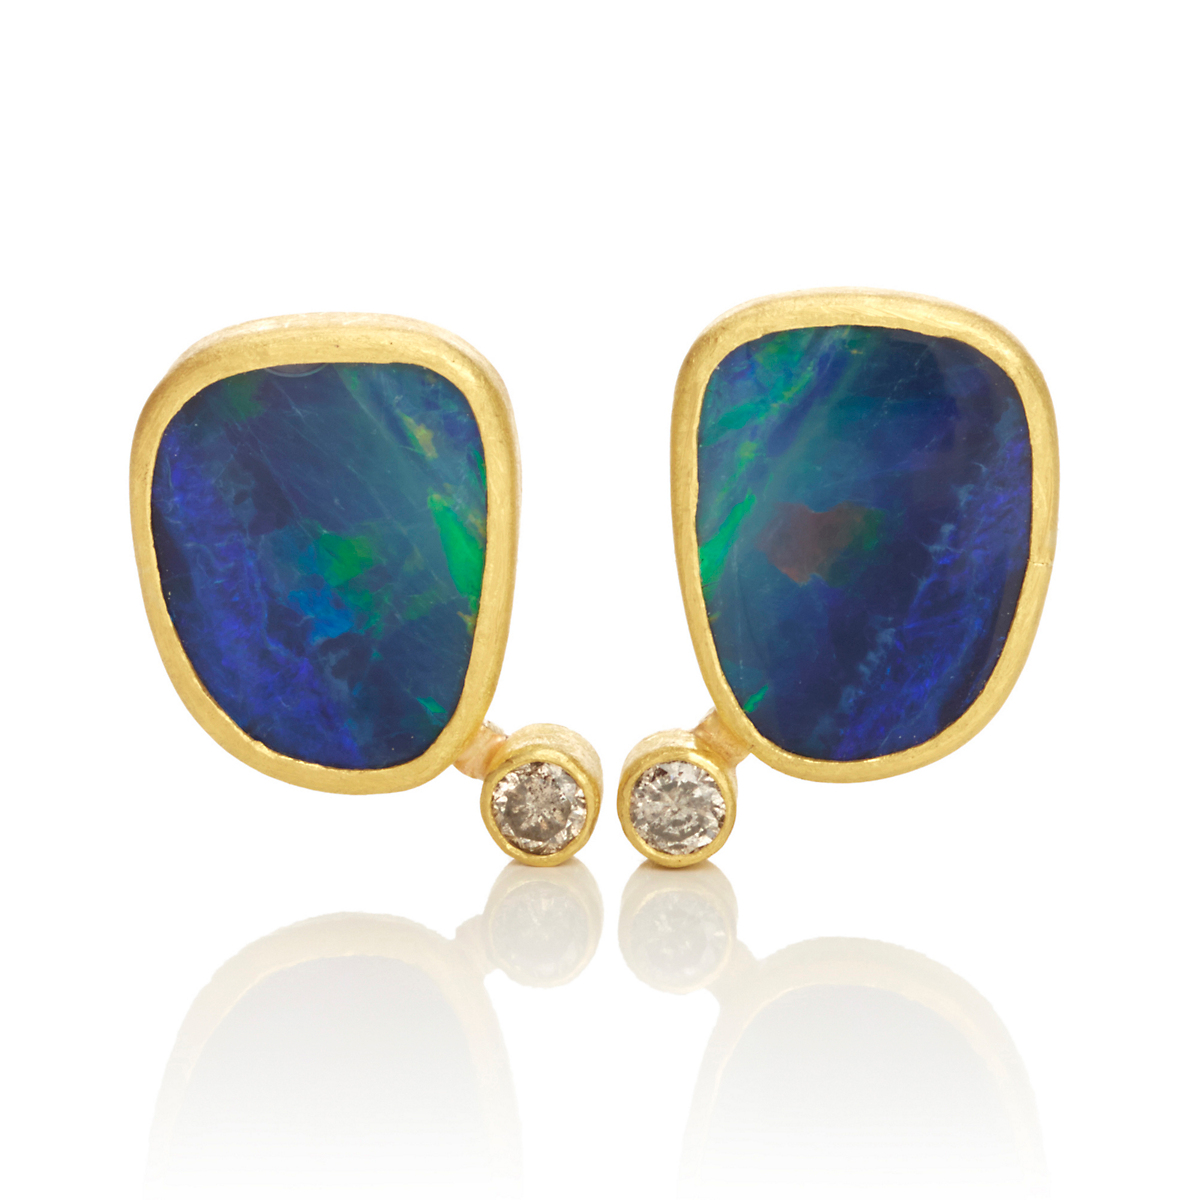 Petra Class Opal Doublet & Diamond Earrings